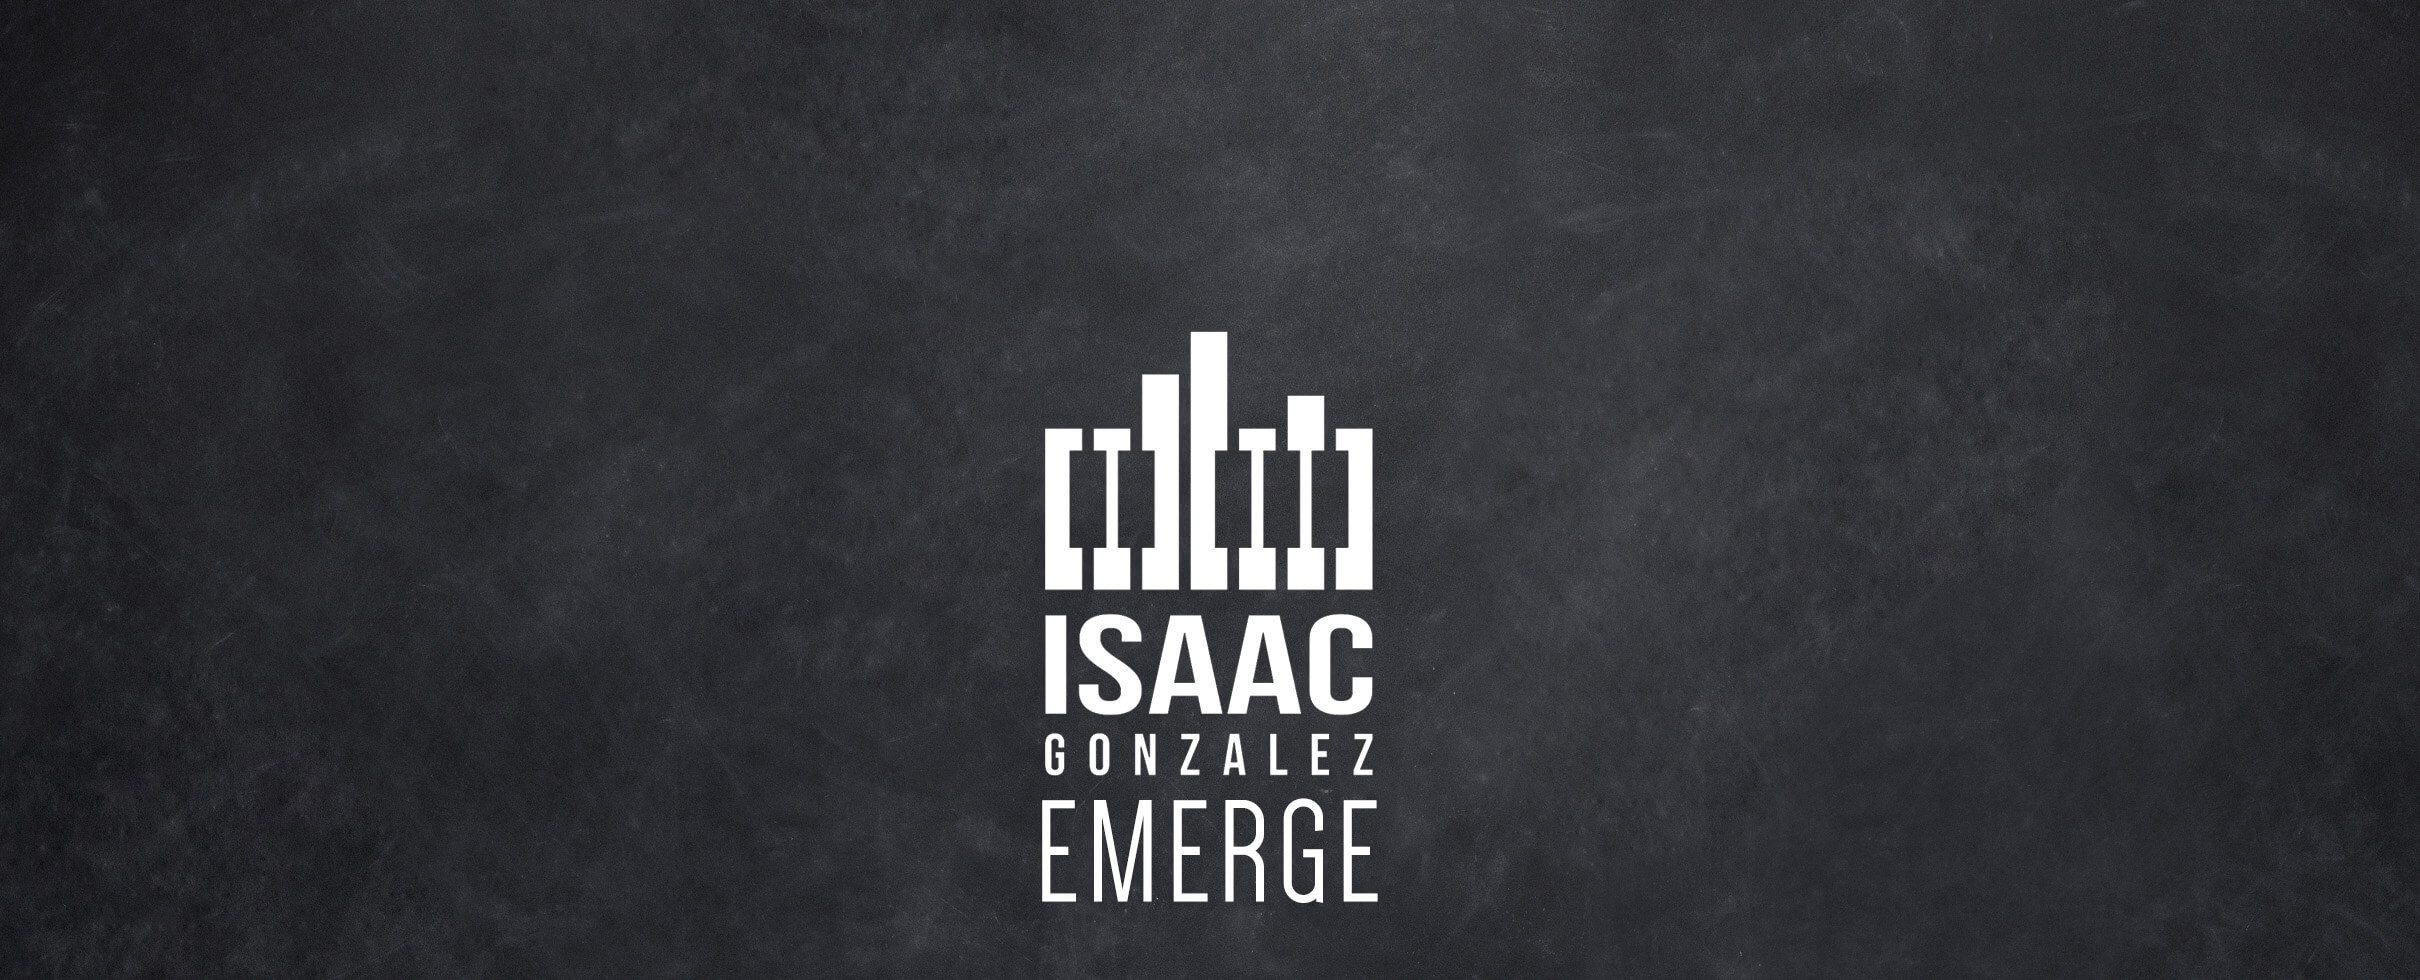 <h1>Nuevos Patches de</h1> <strong>Isaac Gonzalez</strong>